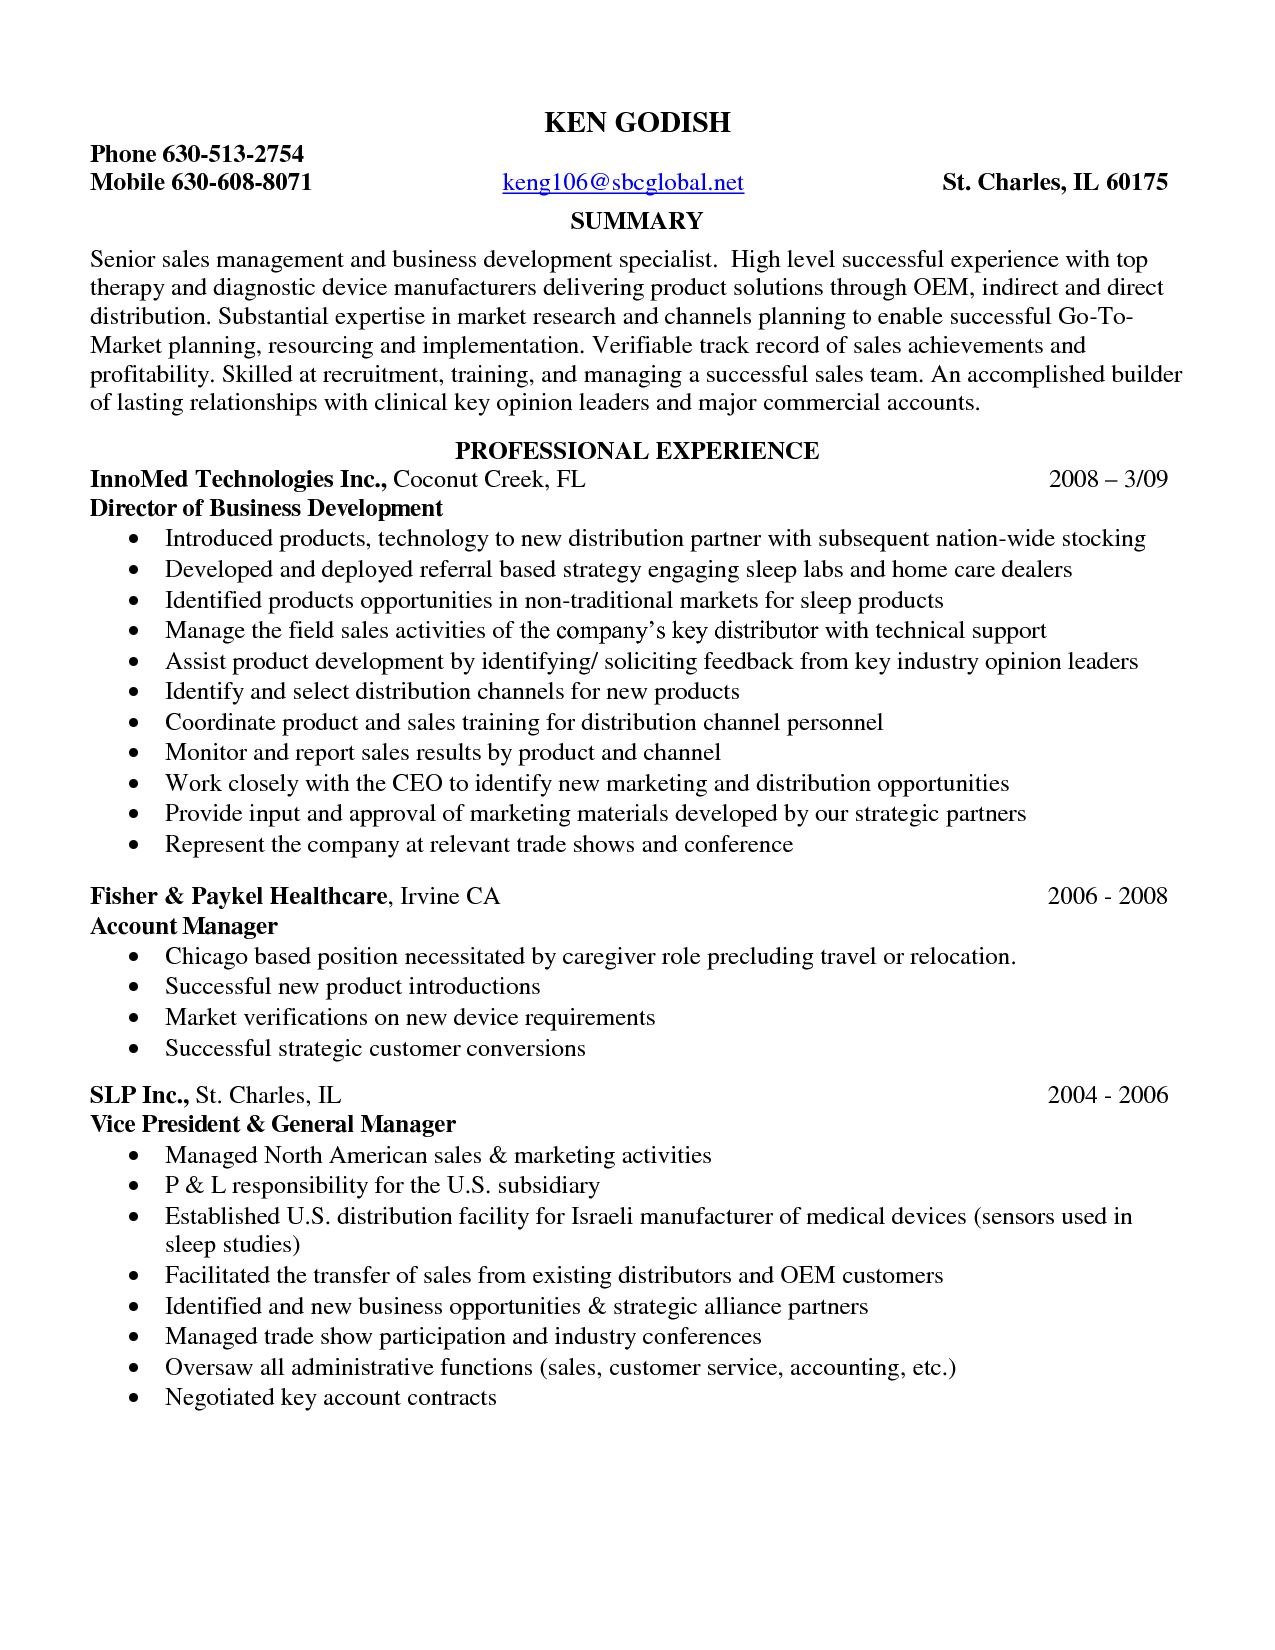 sample resume entry level pharmaceutical sales sample resume entry level - Medical Device Sales Resume